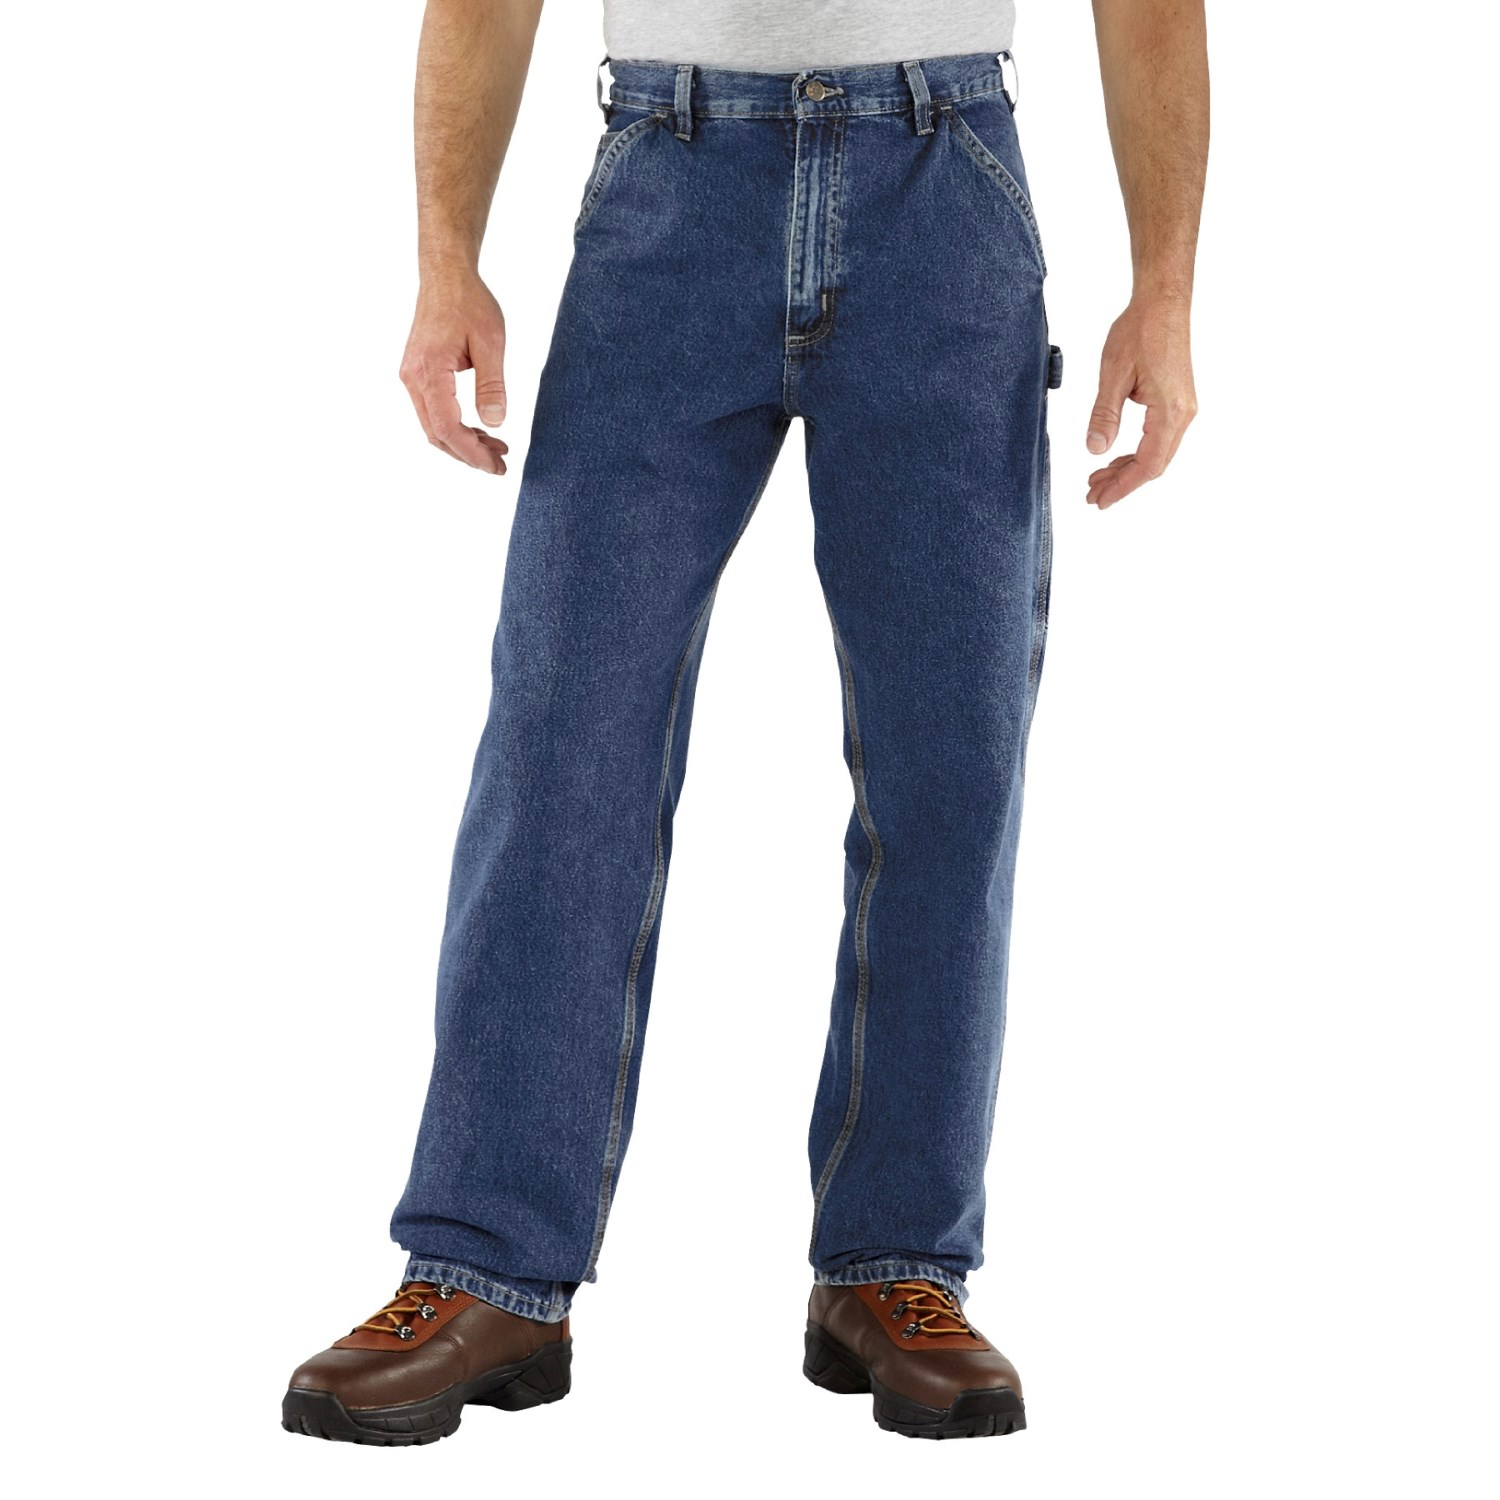 Finding the Perfect Pair of Men's Jeans. Men's jeans come in a variety of cuts and colors. When choosing the right pair, you'll need to consider where you're wearing them, the activity you're doing, your body type, and your personal style.